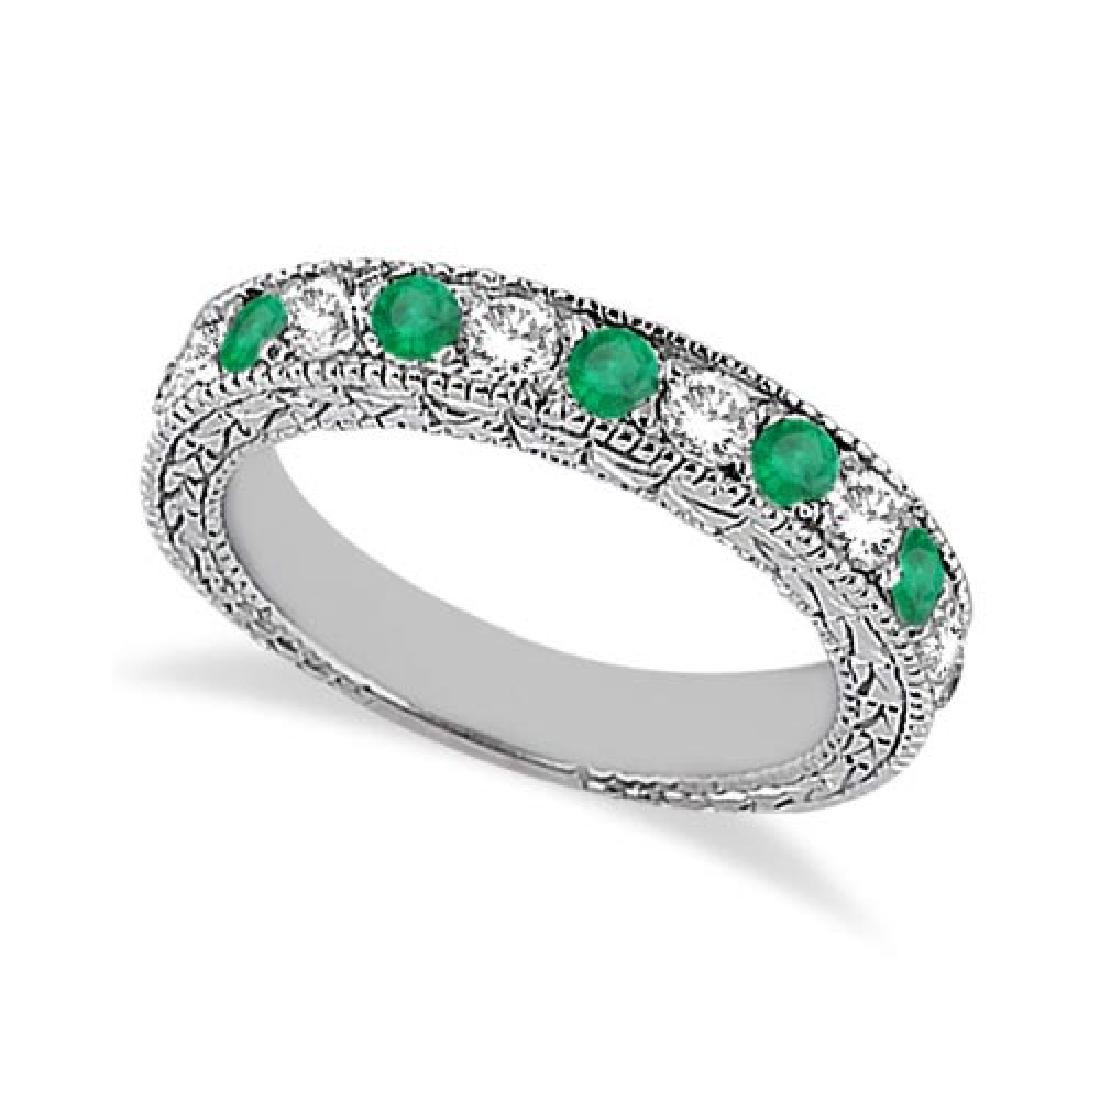 Antique Diamond and Emerald Wedding Ring 14kt White Gol